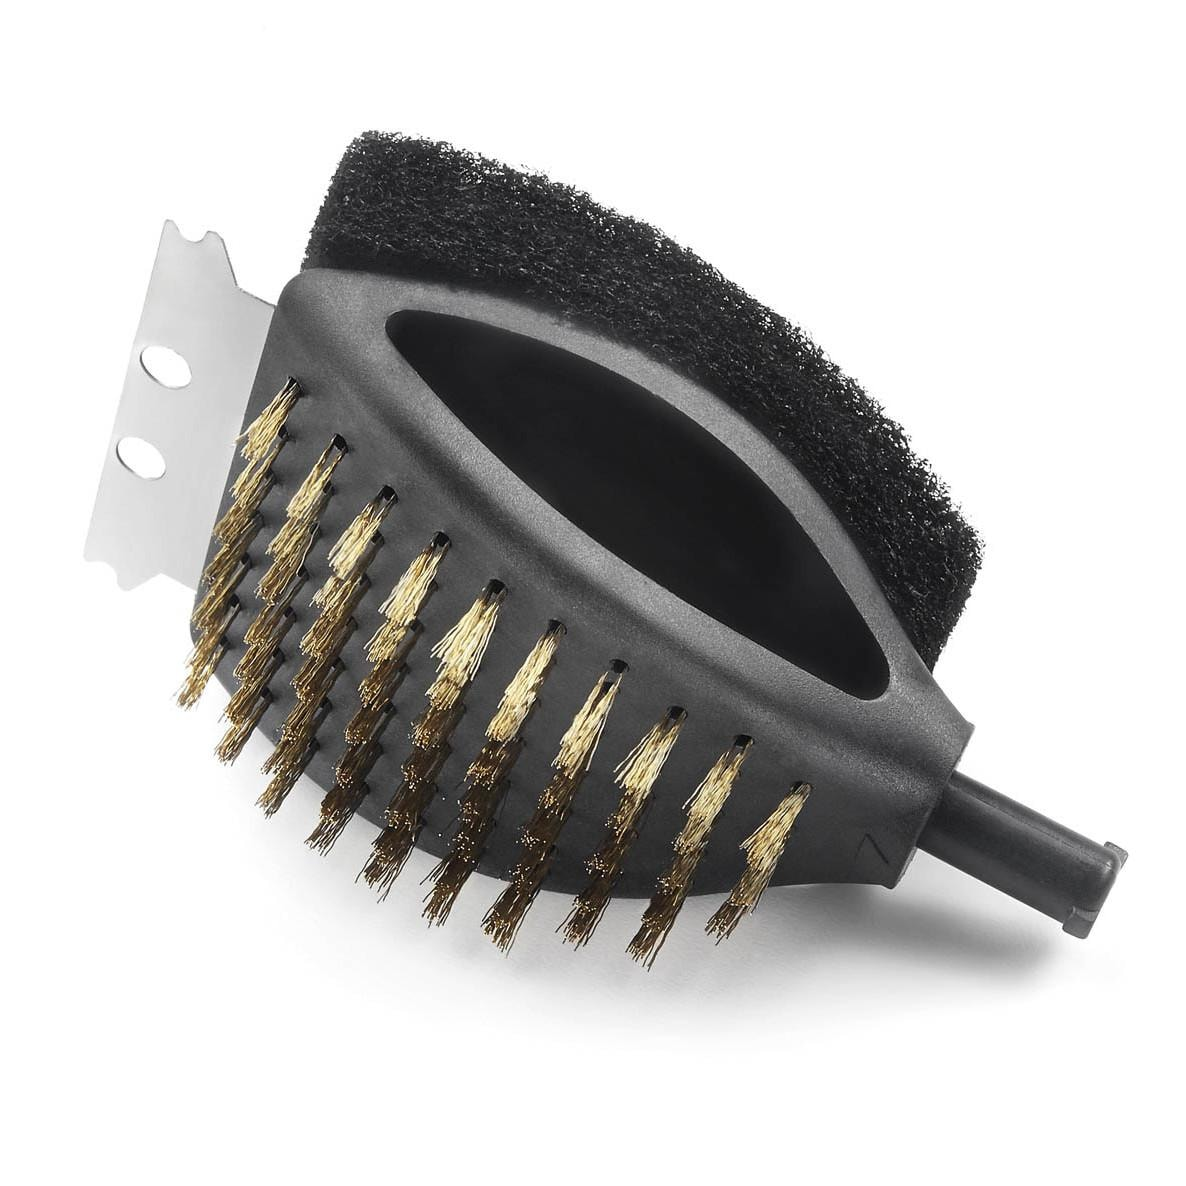 Outset Replacement Brush Head For Model 76222 Telescoping Grill Brush - 76223